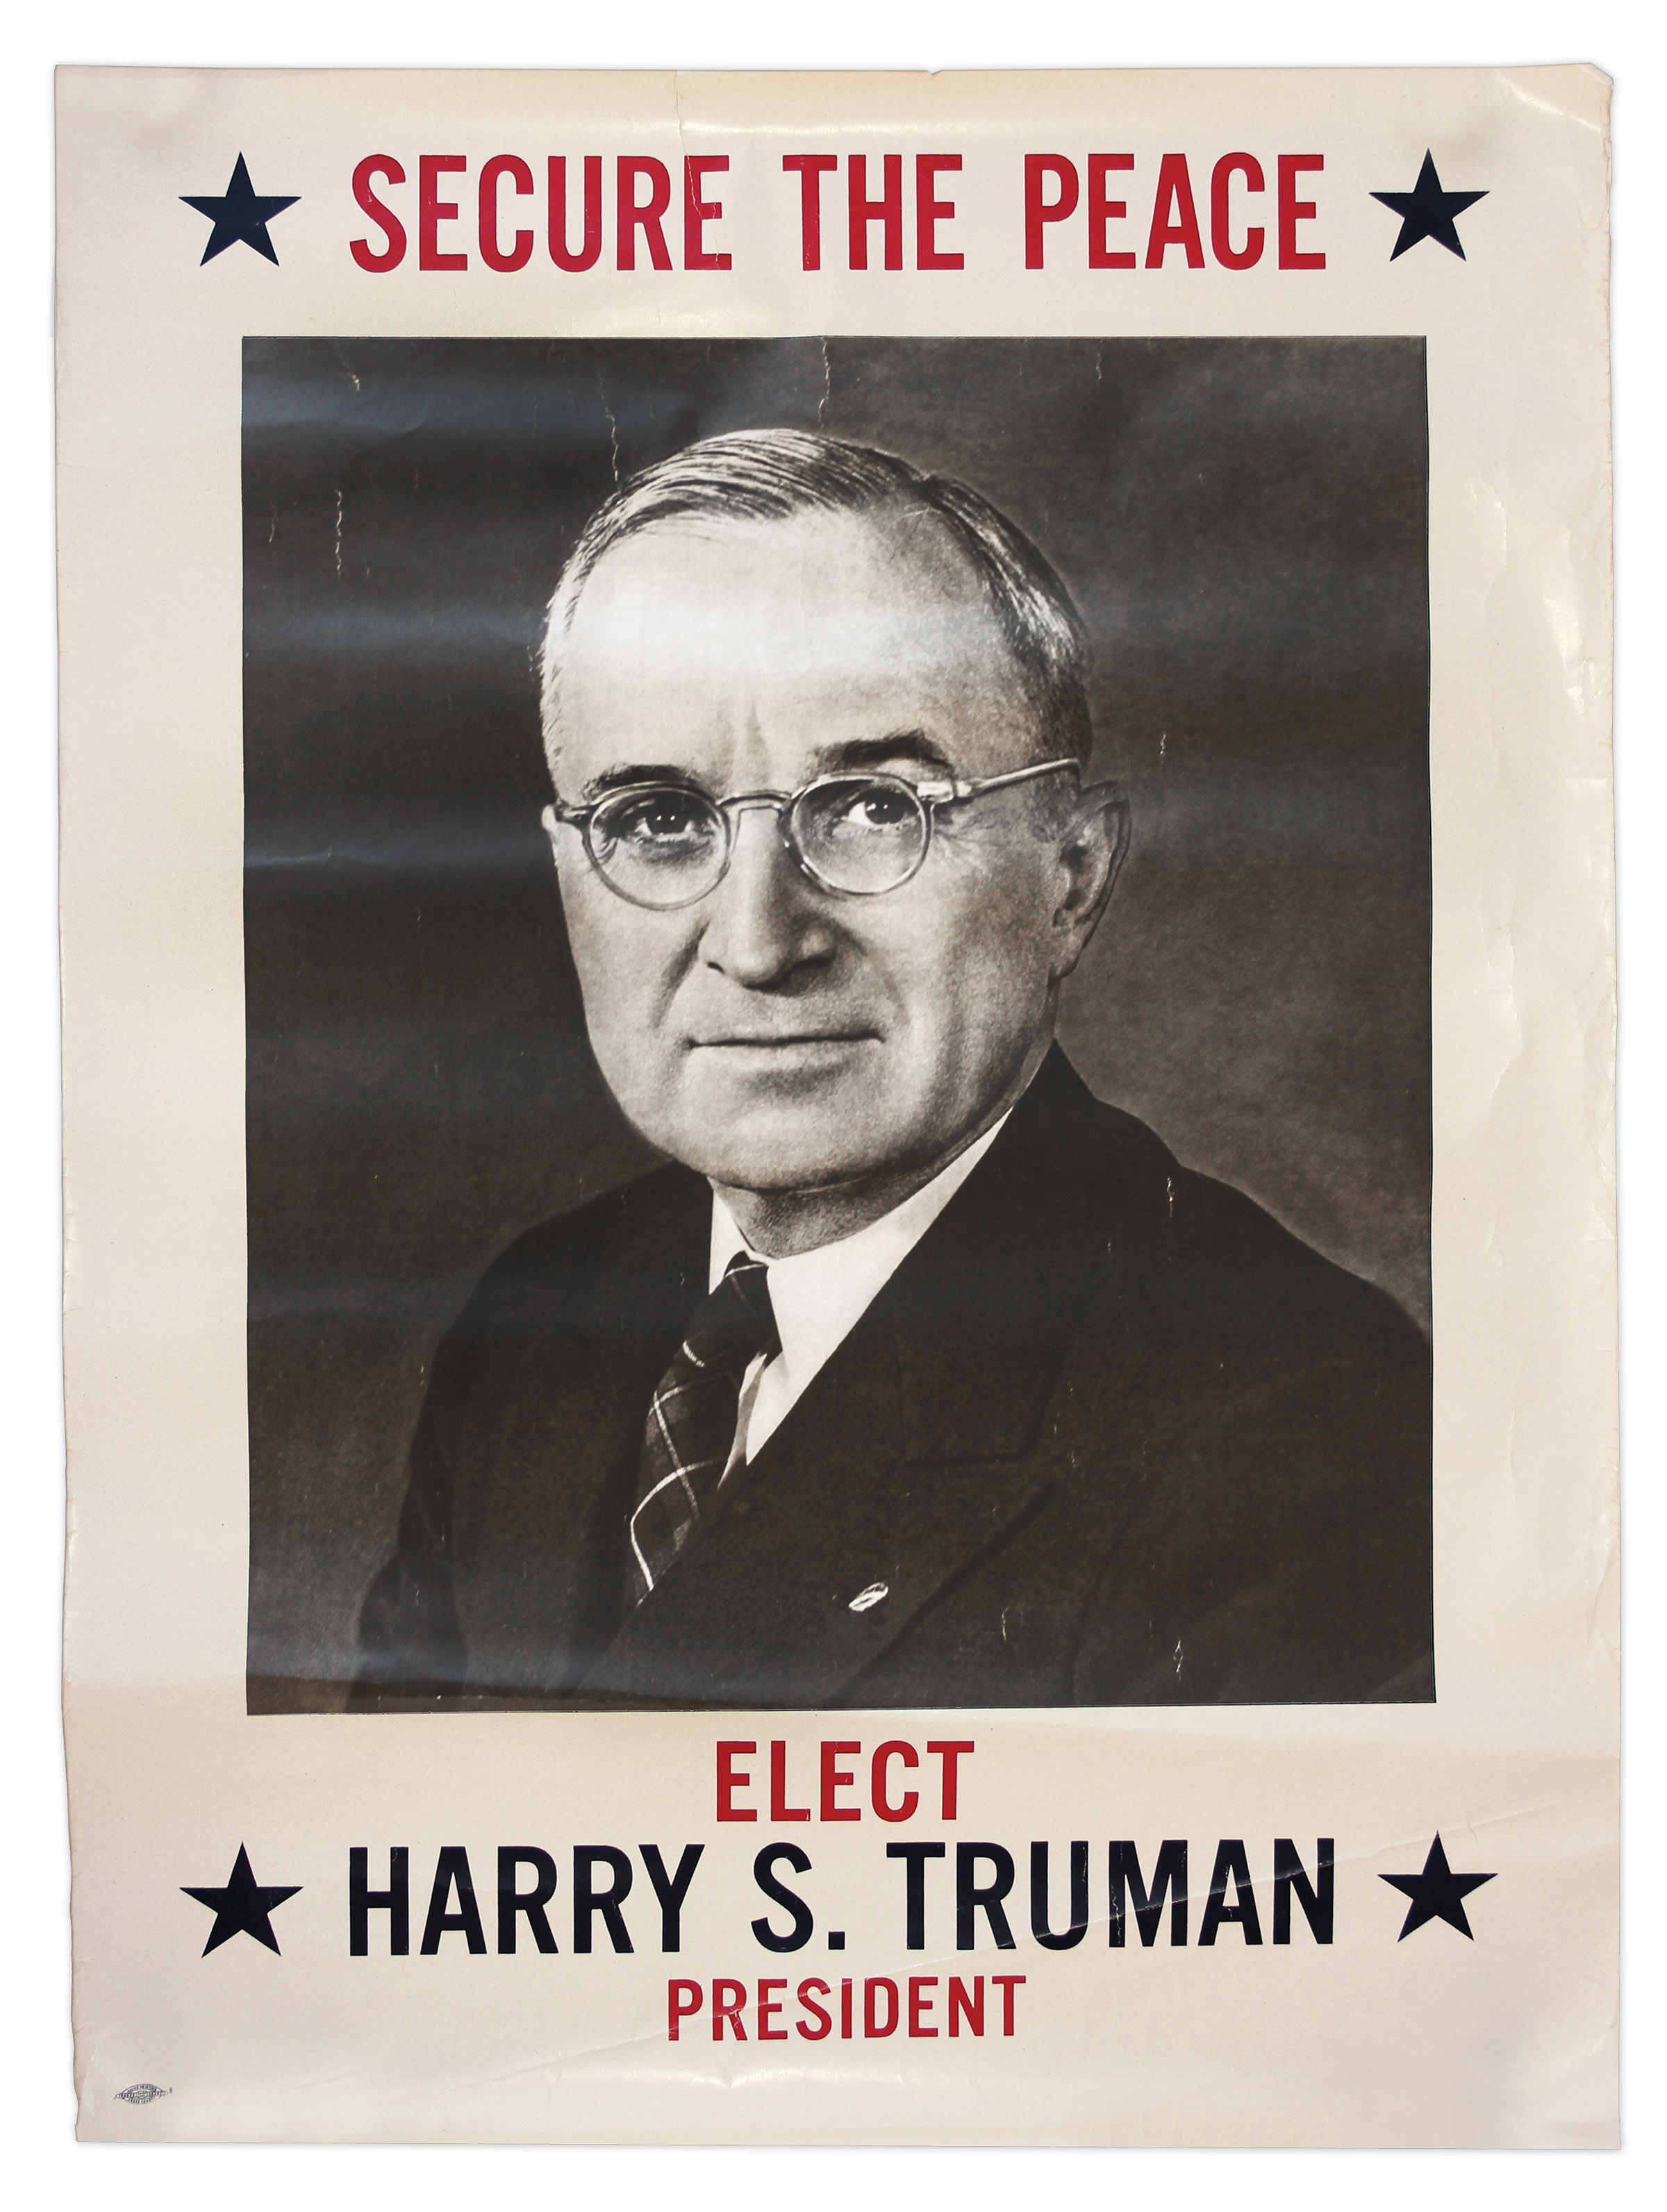 the life of harry s truman Harry s truman[b] (may 8, 1884 – december 26, 1972) was an american statesman who served as the 33rd president of the united states (1945–53), assuming that office upon the death of franklin d roosevelt during the waning months of world war ii.